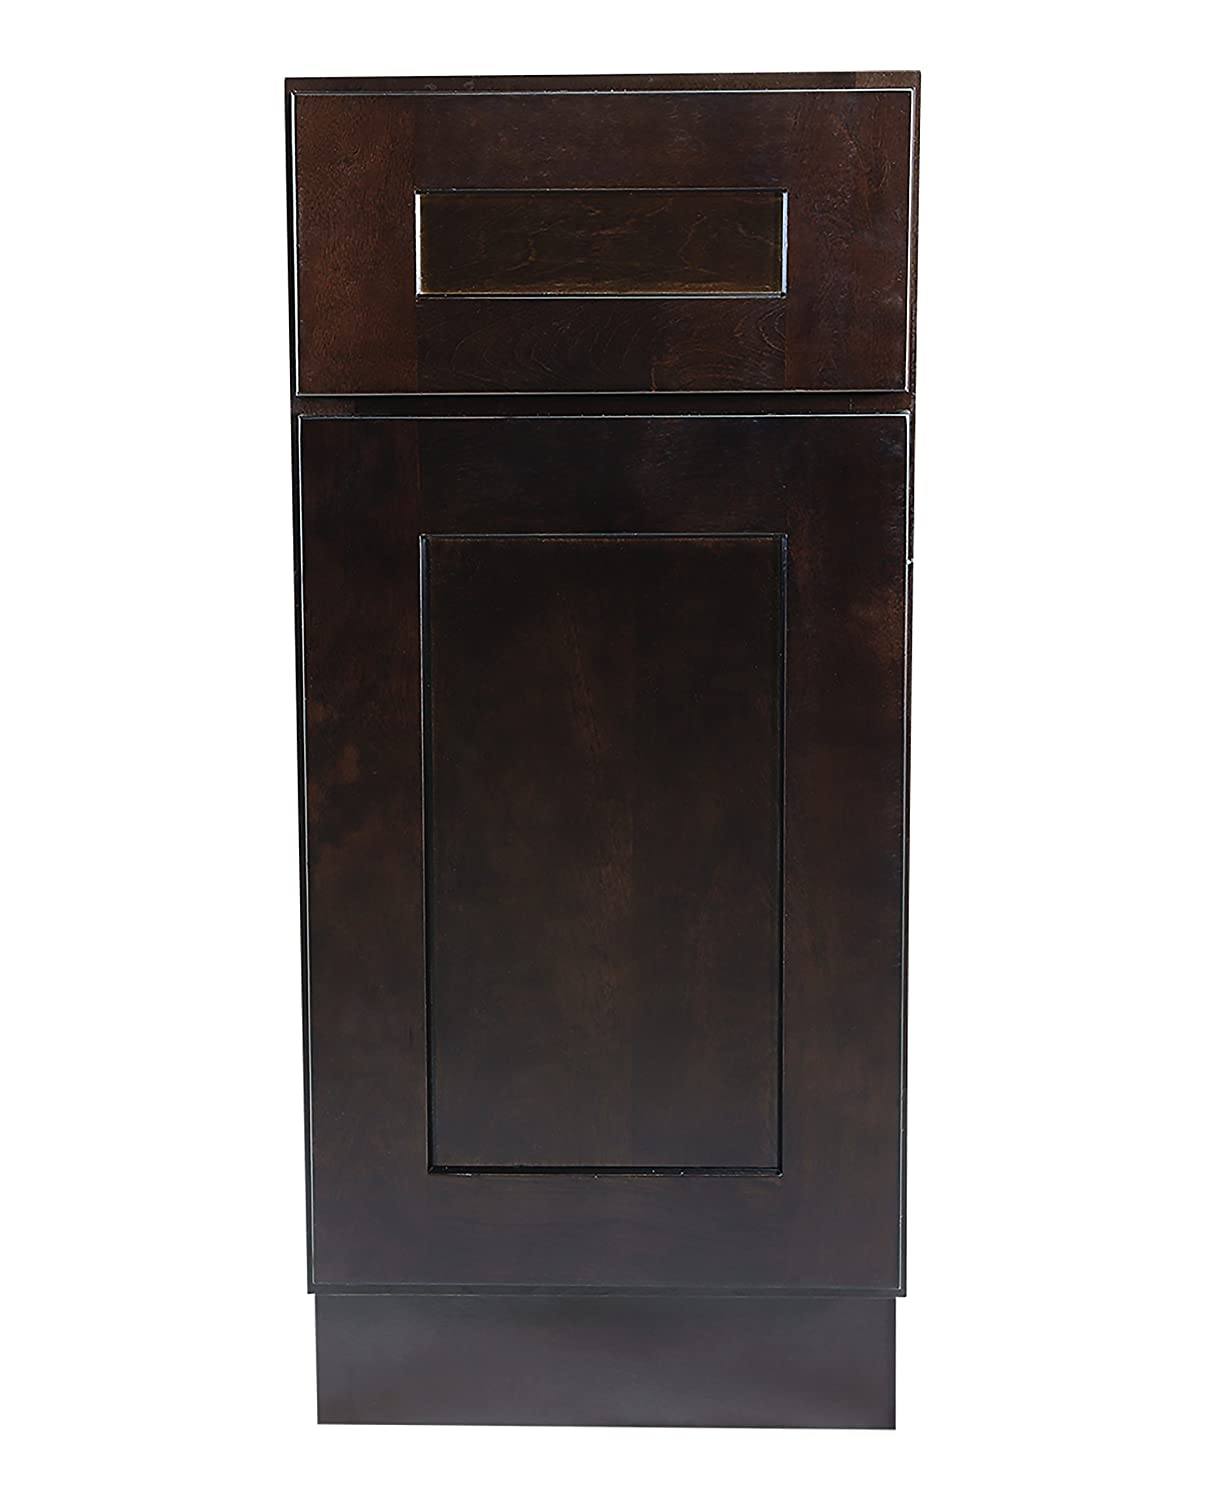 amazon com design house 561944 brookings 21 inch base cabinet rh amazon com 21 inch base cabinet 21 inch base cabinet with drawers